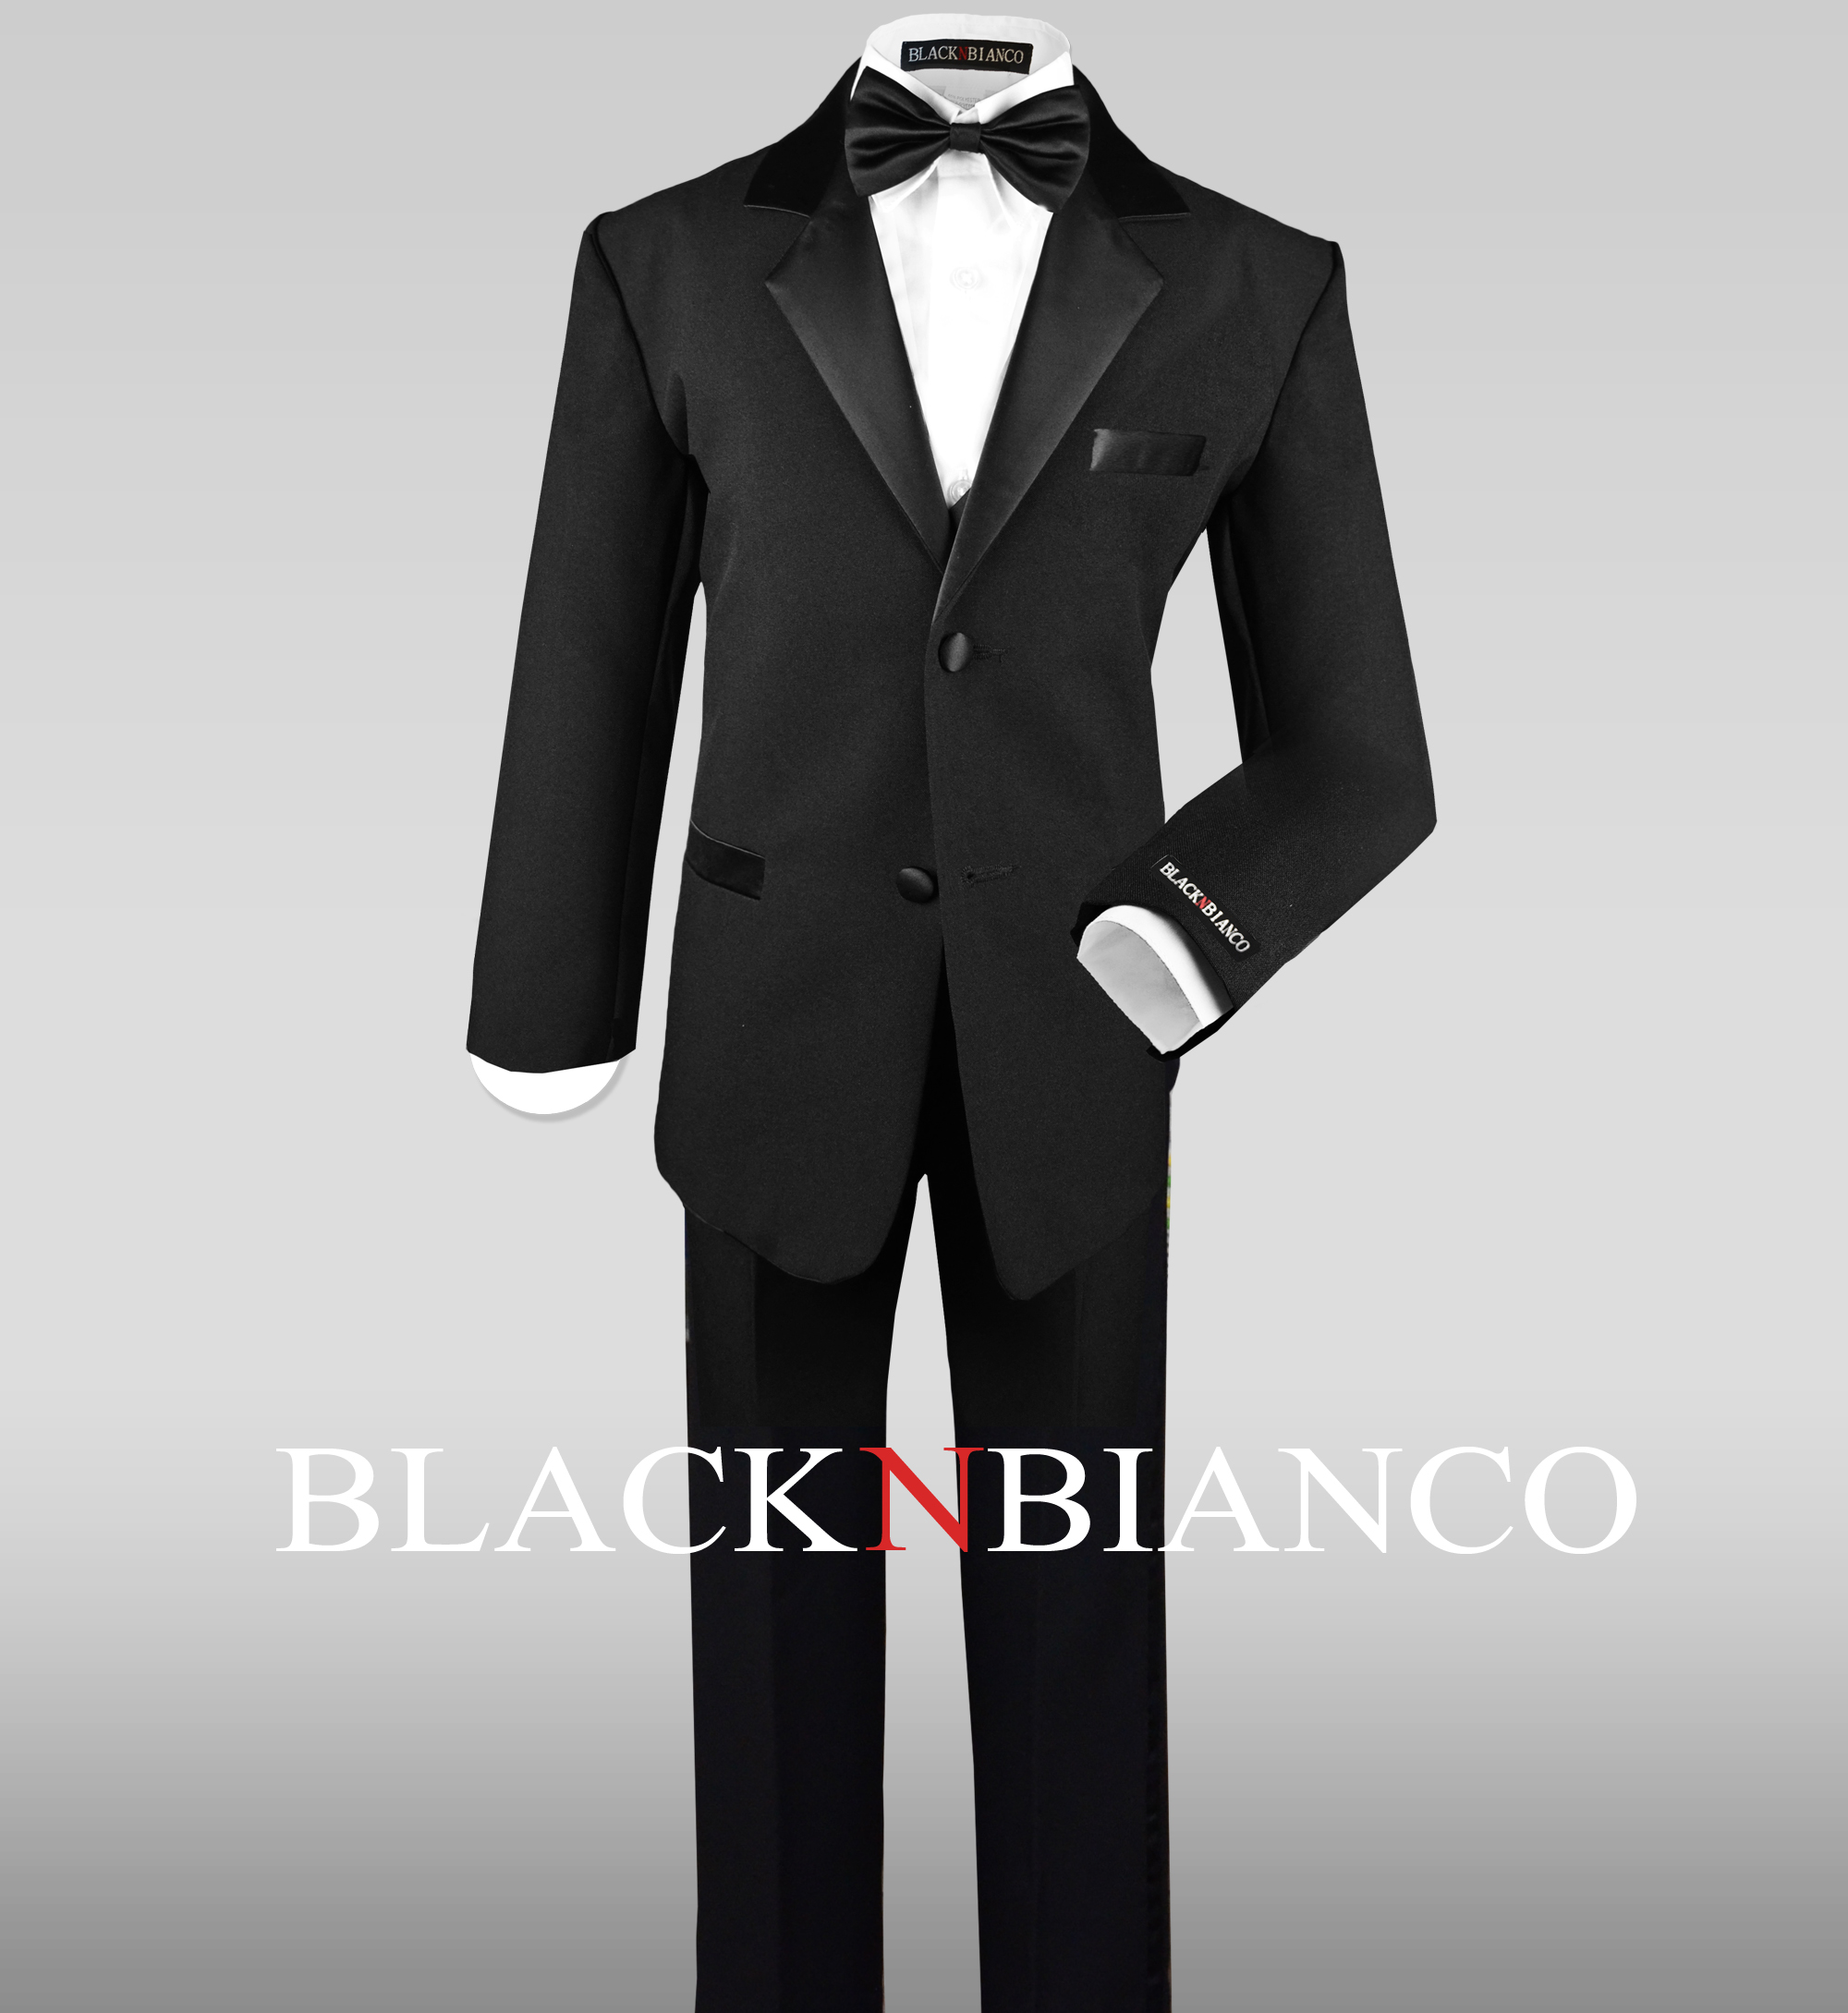 BLACK N BIANCO Blog | Blogging about about the latest kids formal